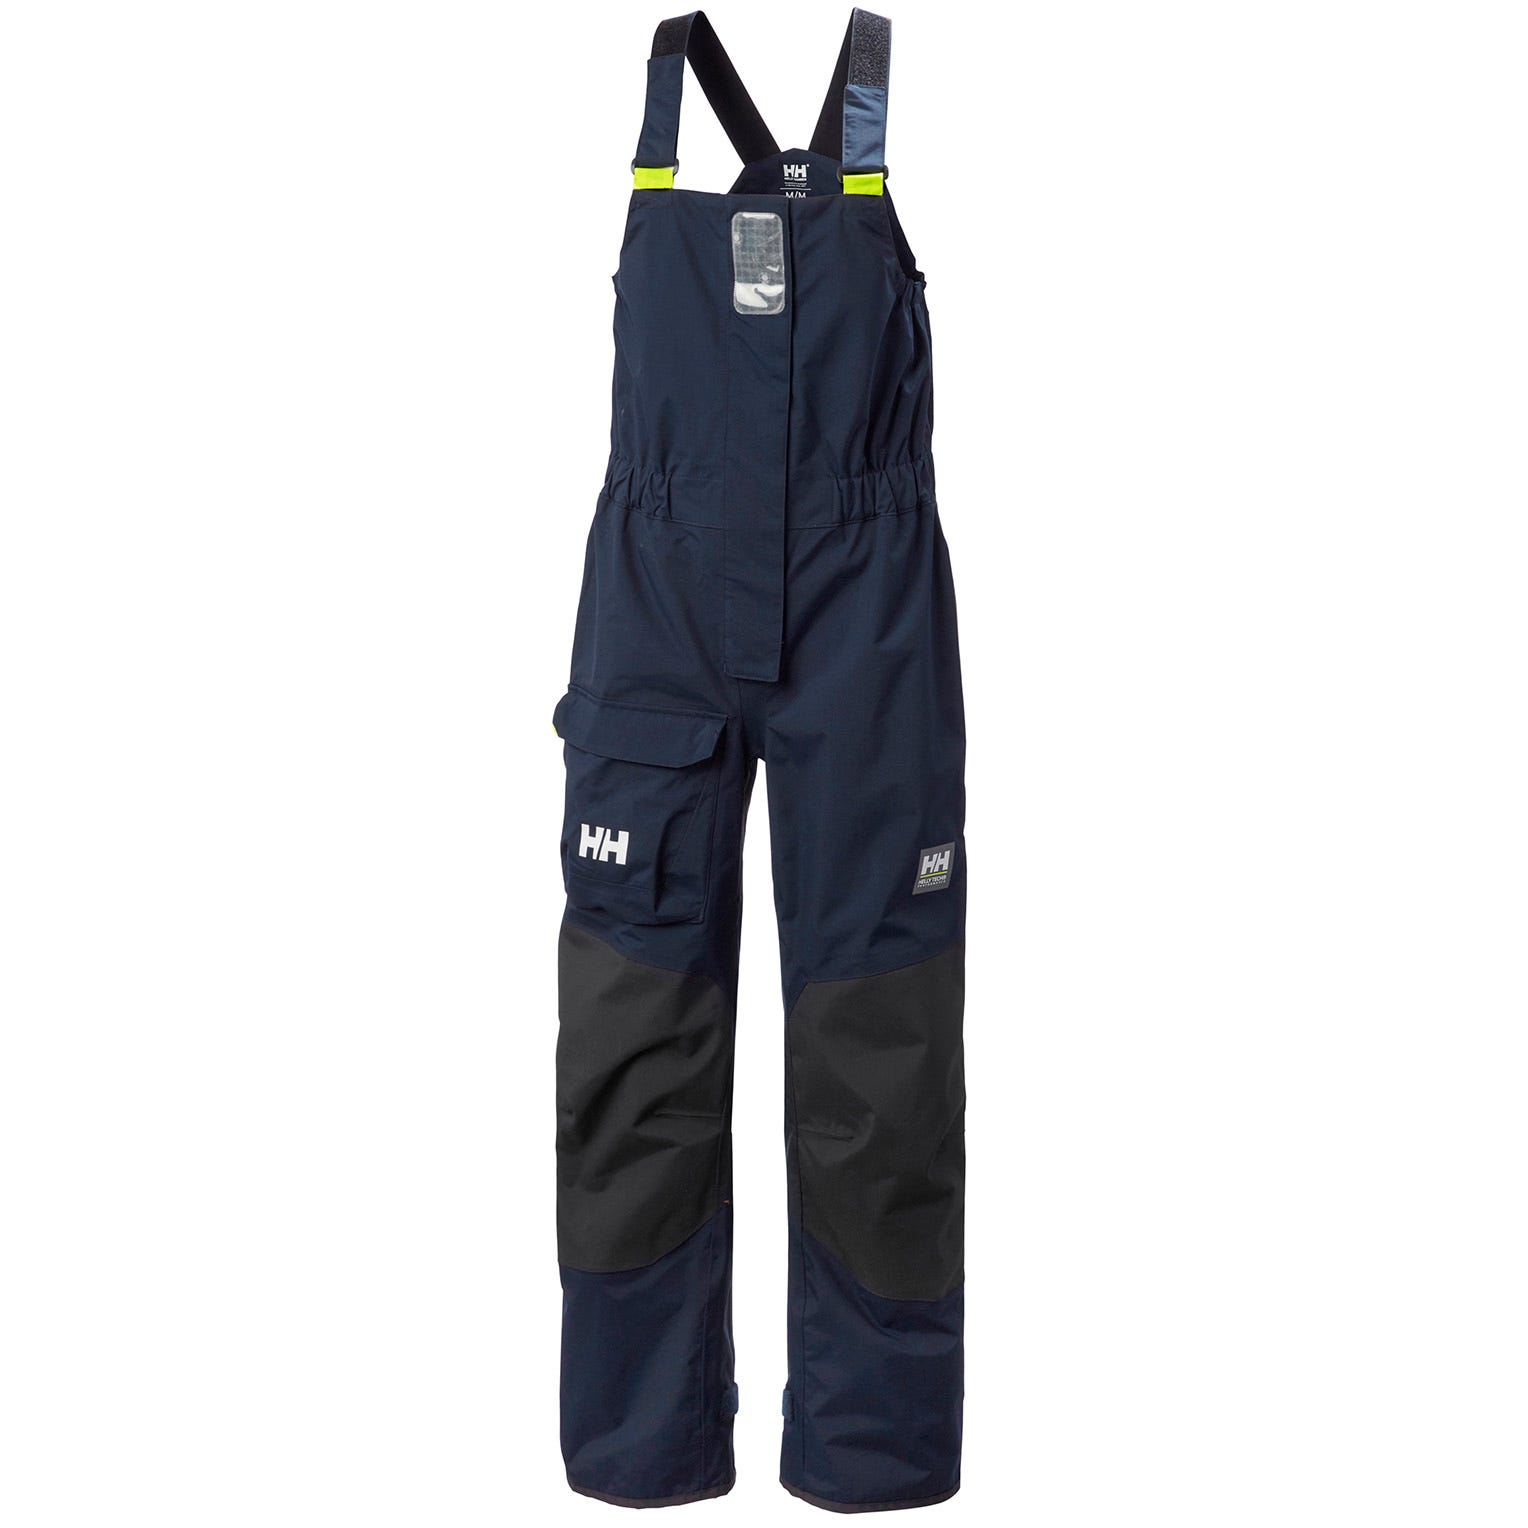 Helly Hansen Womens Pier Bib Sailing Trouser Navy S